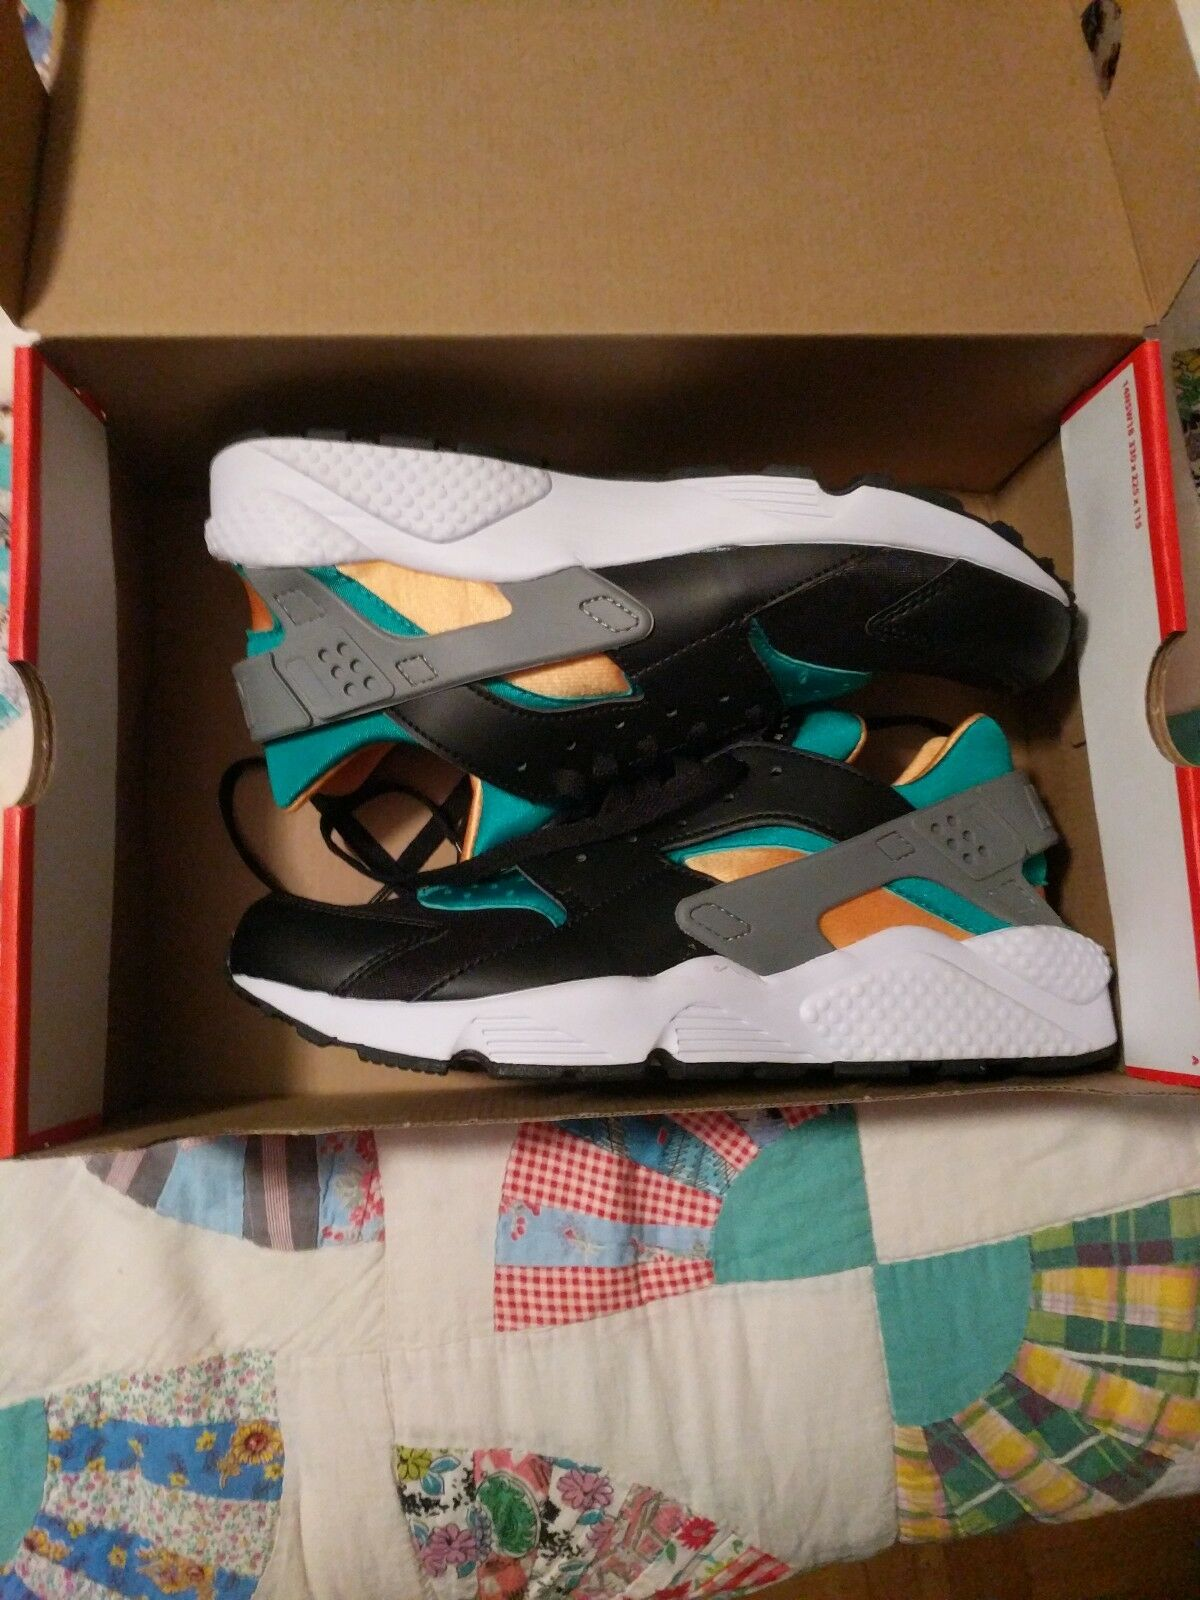 Brand New Nike Air Huarache OG 1991 colors size 10.5 Jacksonville Jaguars colors The latest discount shoes for men and women